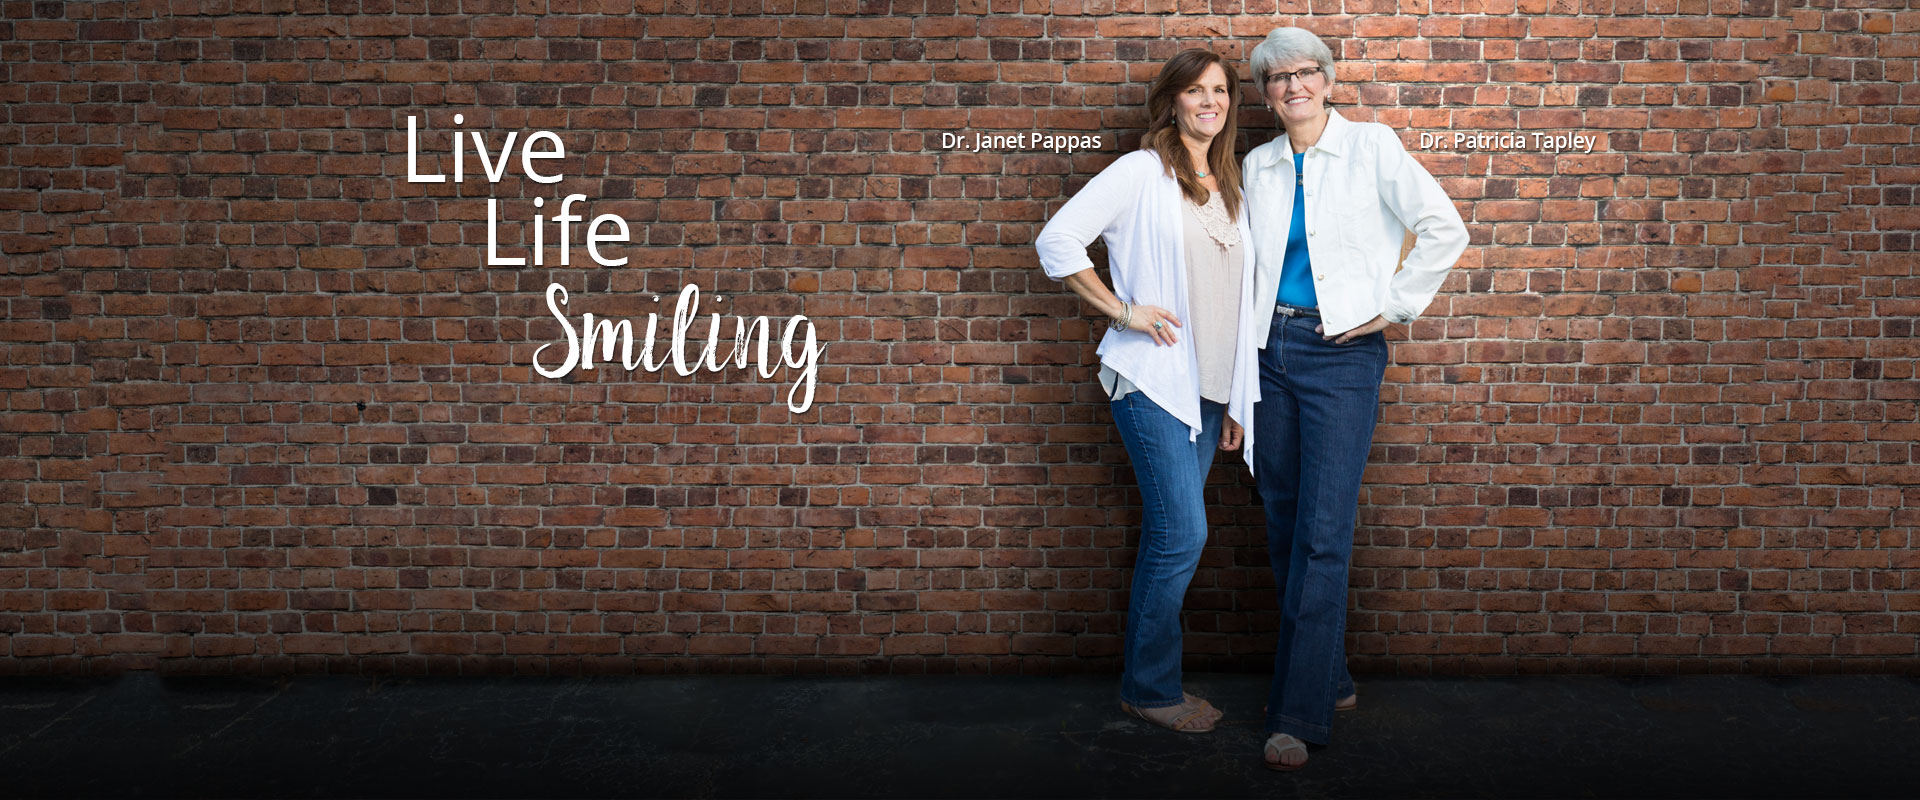 Live Life Smiling Pappas & Tapley Orthodontics Gainesville FL